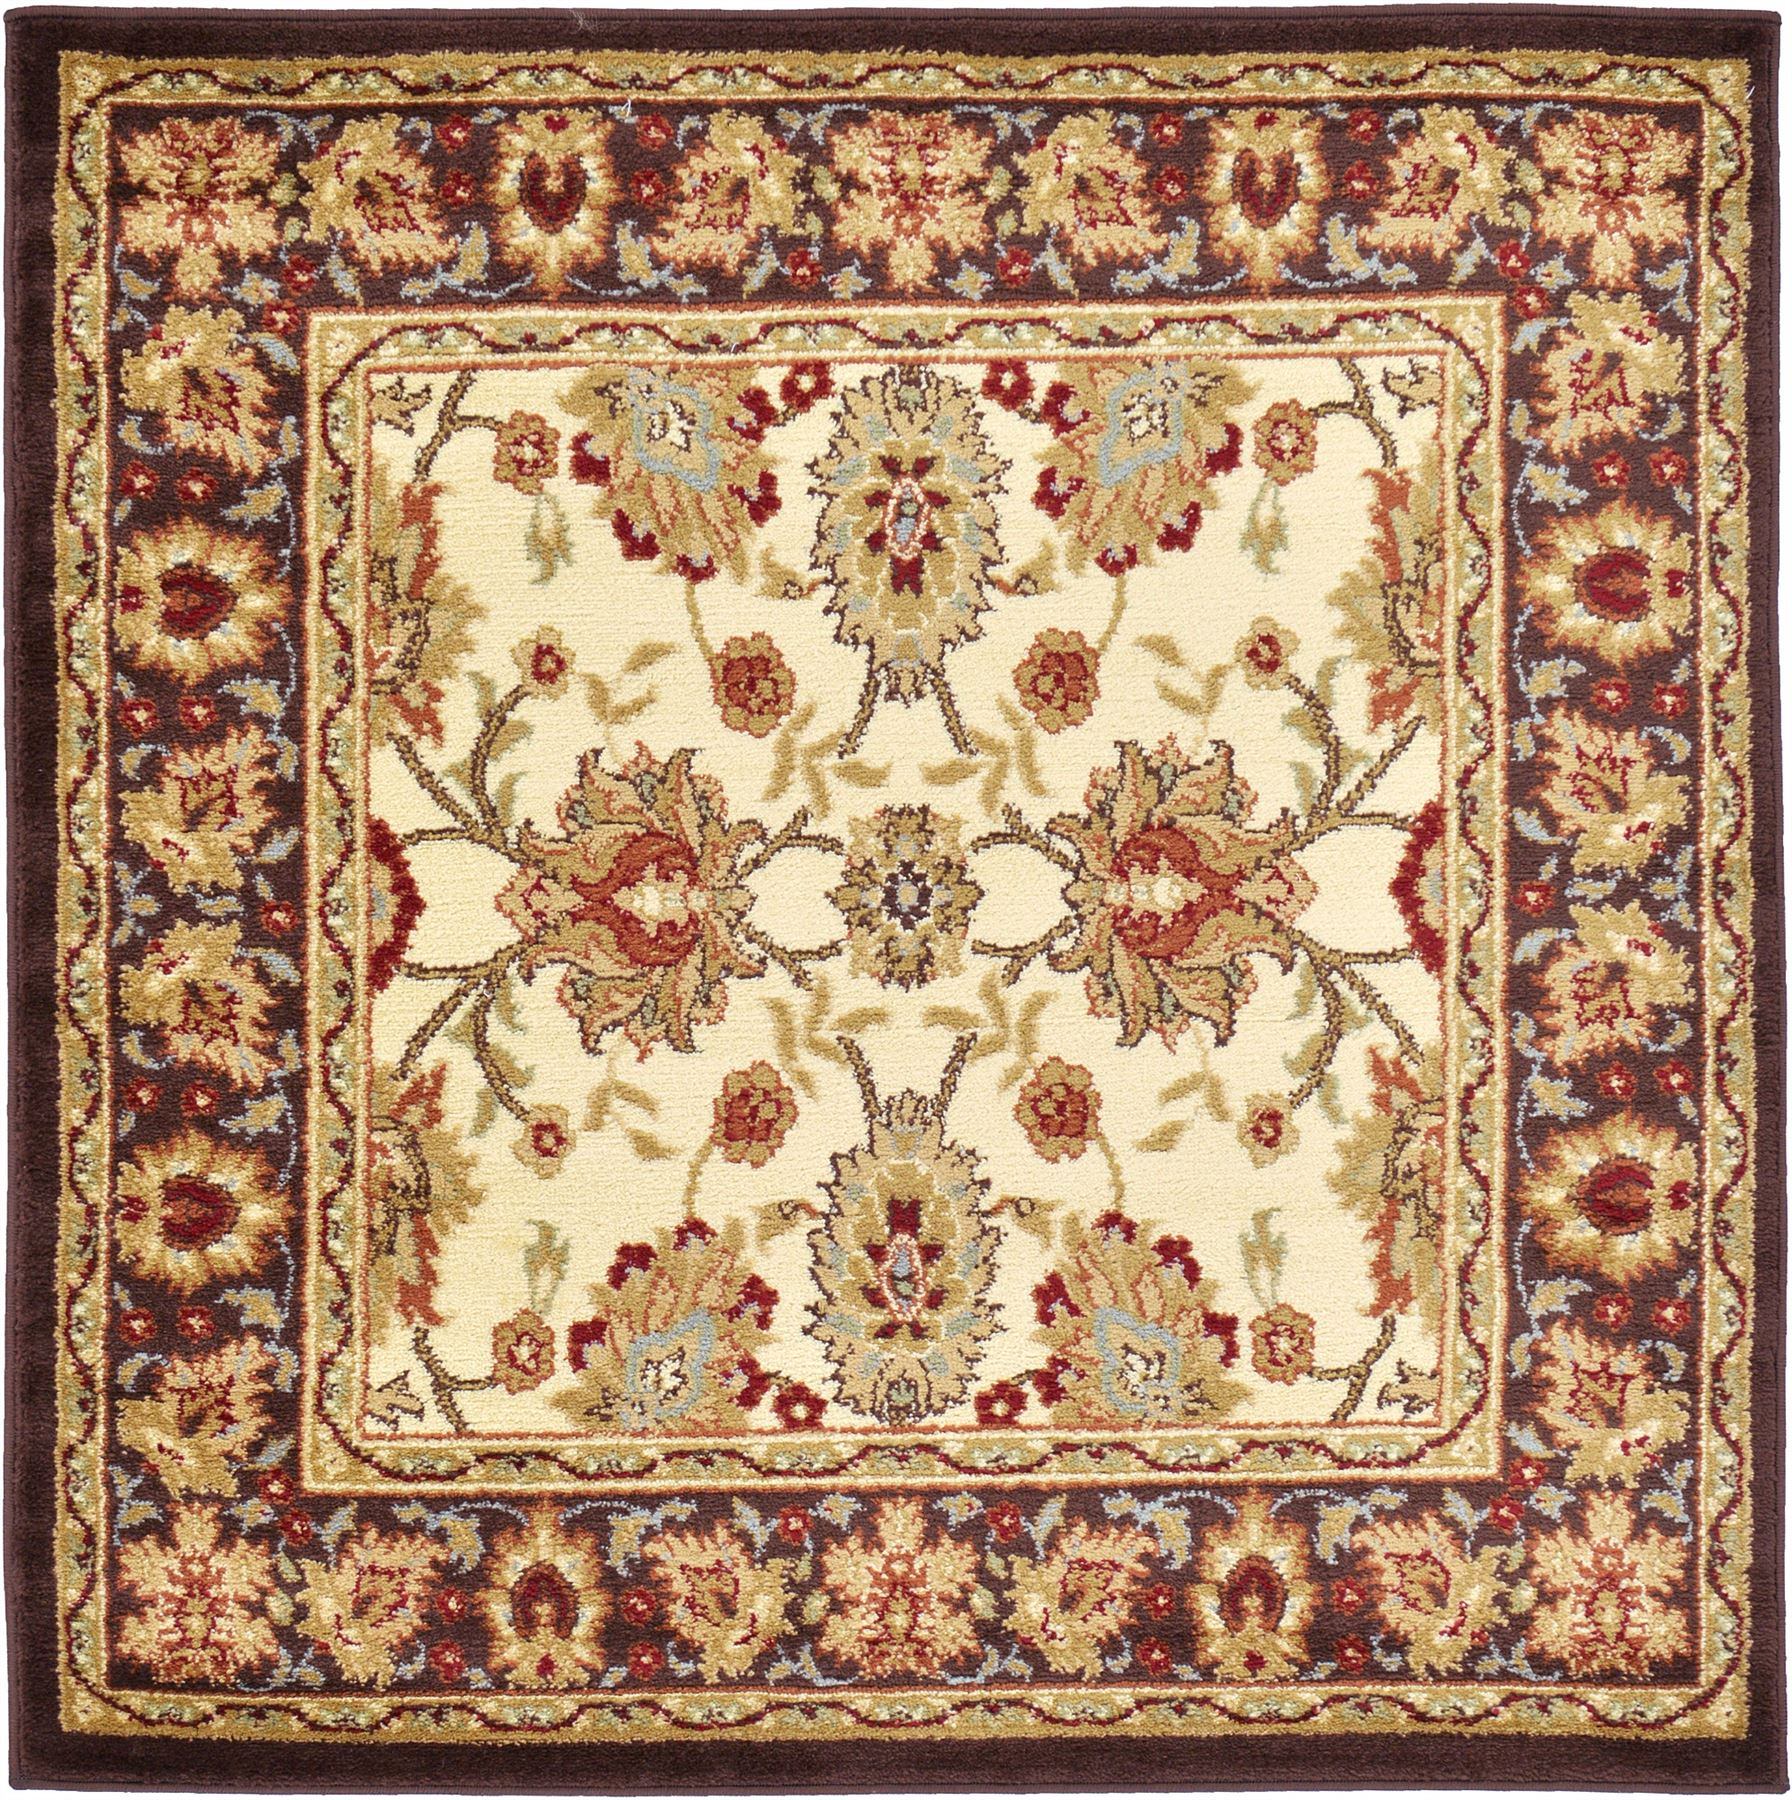 Rug Runner Rug: Traditional Rug Oriental Area Rug Runner-Round-Rug Persian